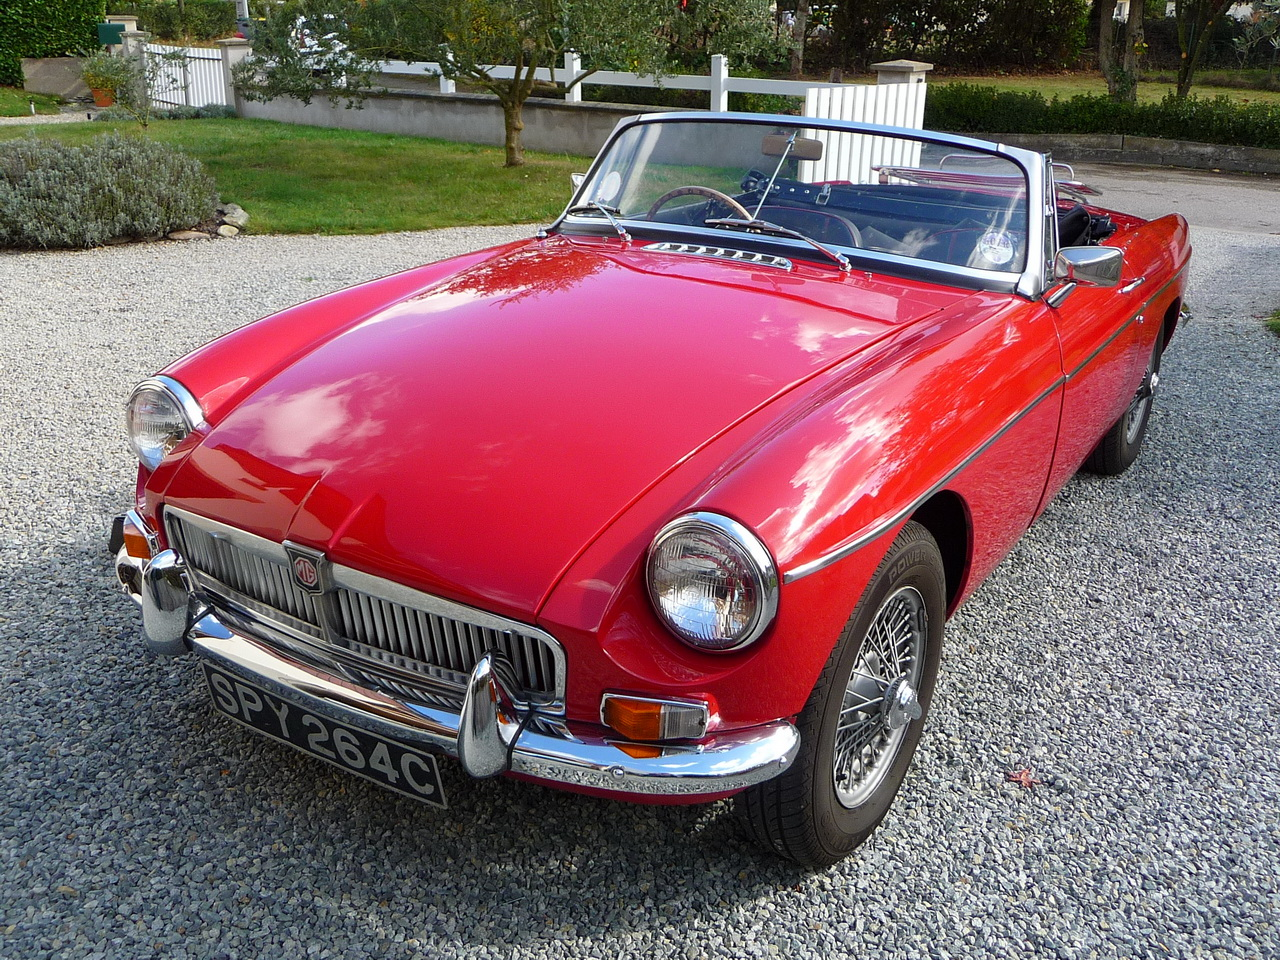 annonce mg b vente mgb roadster 1965 tartan red video mgb british annonces. Black Bedroom Furniture Sets. Home Design Ideas